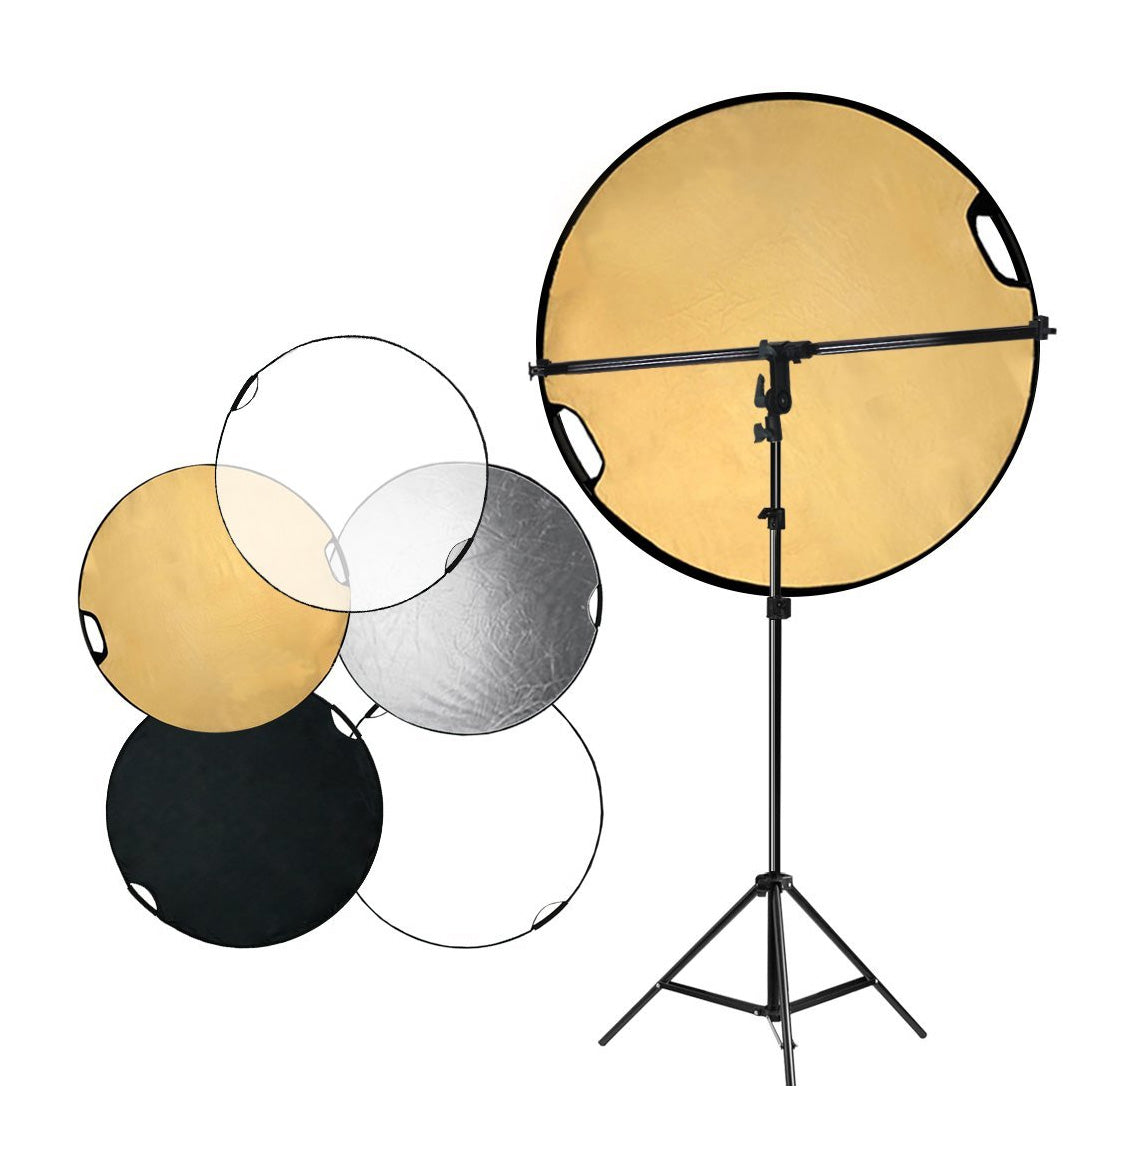 AGG2082 Photo Studio LimoStudio Swivel Head Reflector Support Holder Arm Hand Held Boom Stand Kit Boom Stand Arm Bar with 43 Inch Diameter 5 Color in 1 Round Collapsible Reflector Disc Panel